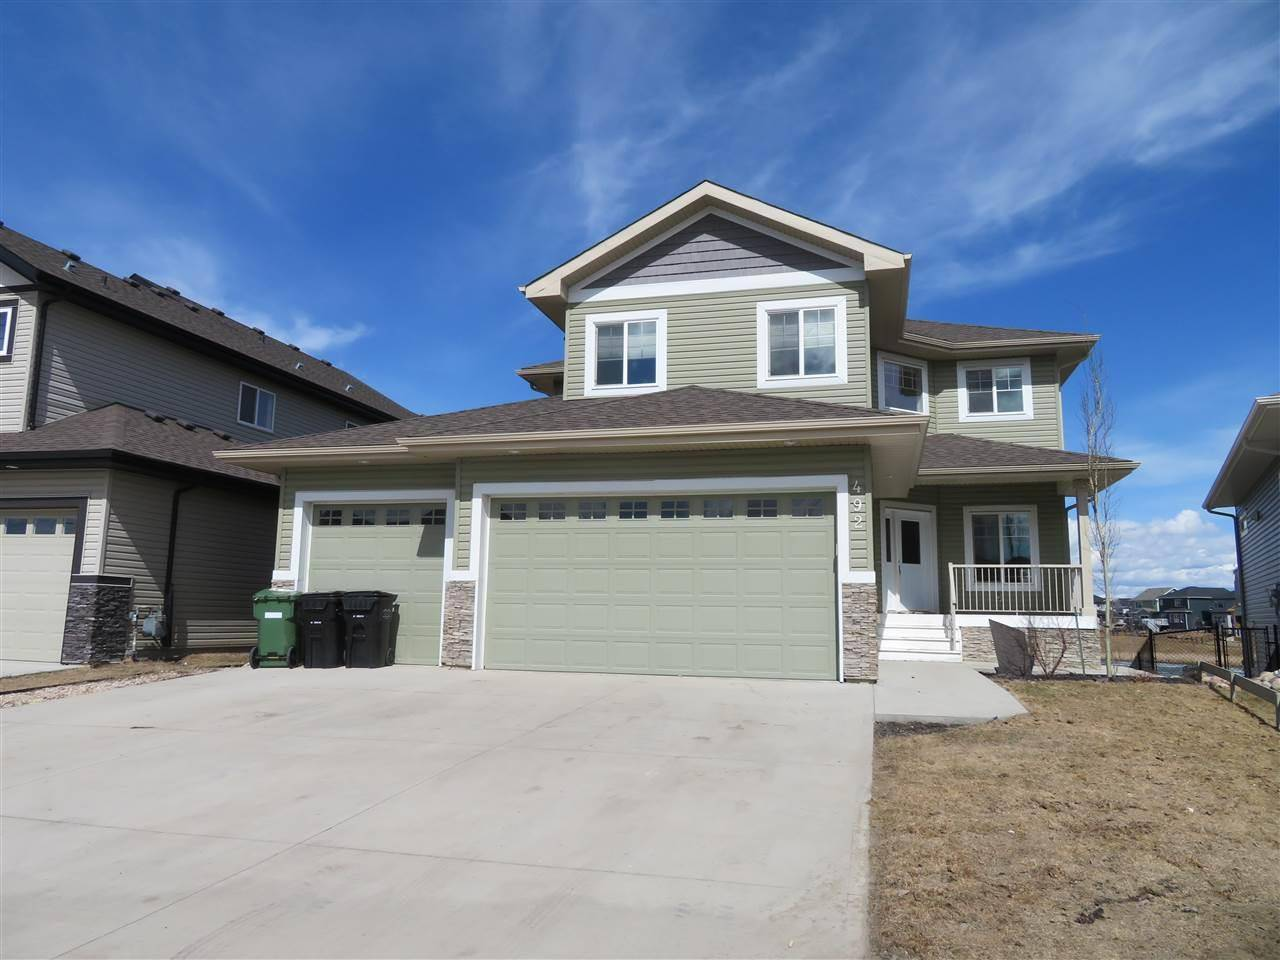 House for sale at 492 Reynalds Wd Leduc Alberta - MLS: E4189263